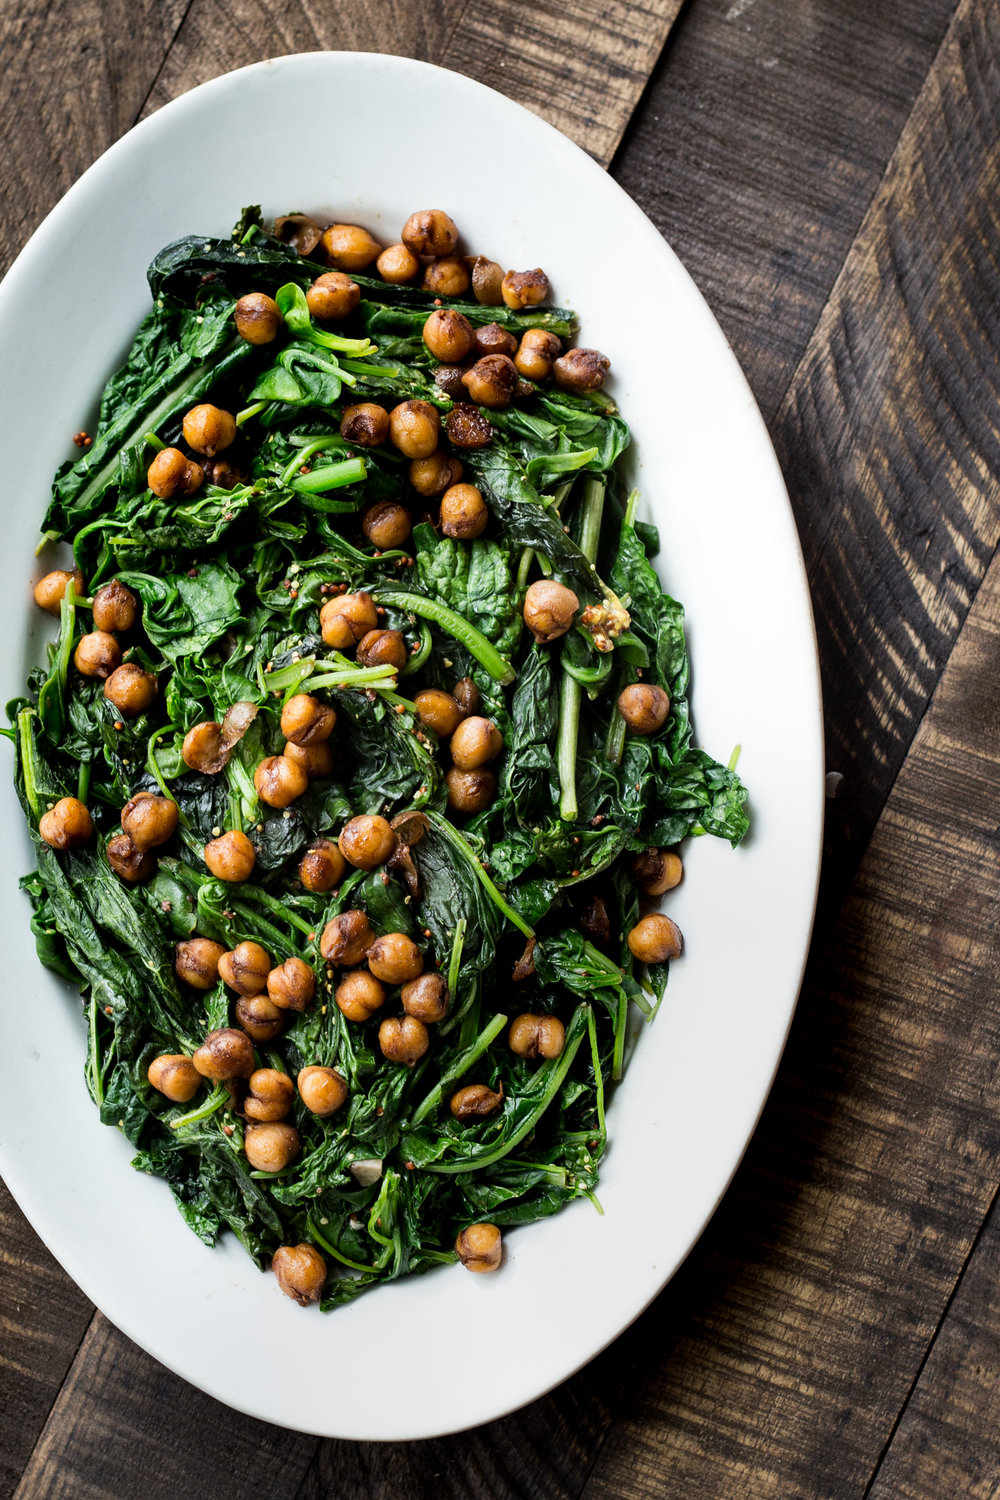 Braised Mustard Greens with Caramelized Sesame Chickpeas